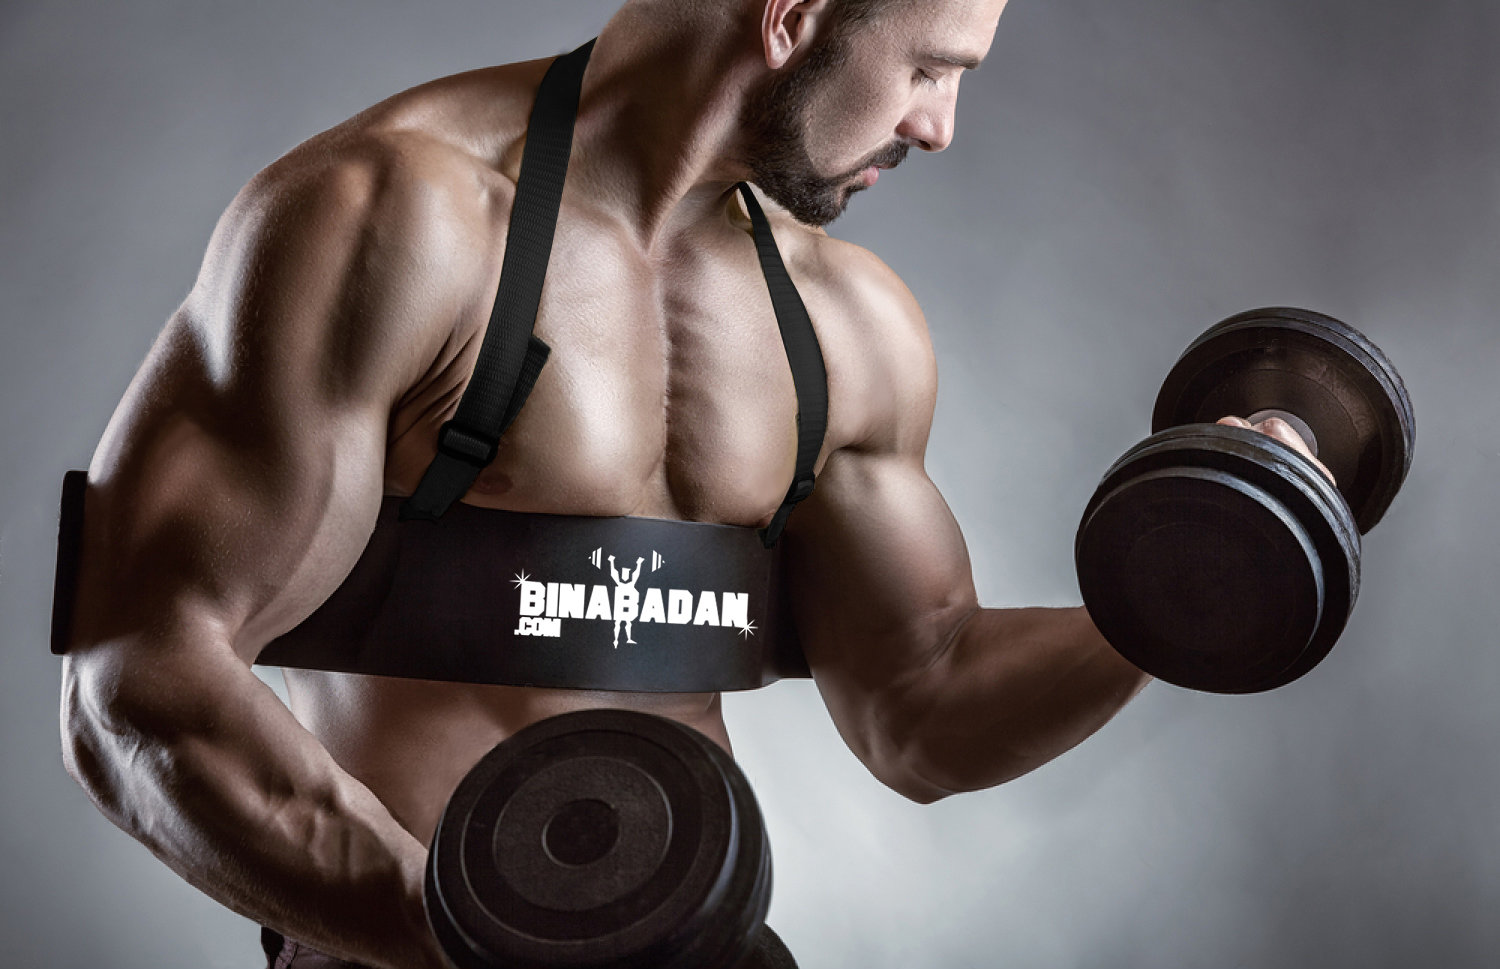 Binabadan.com Arm Blaster for ARM WORKOUTS